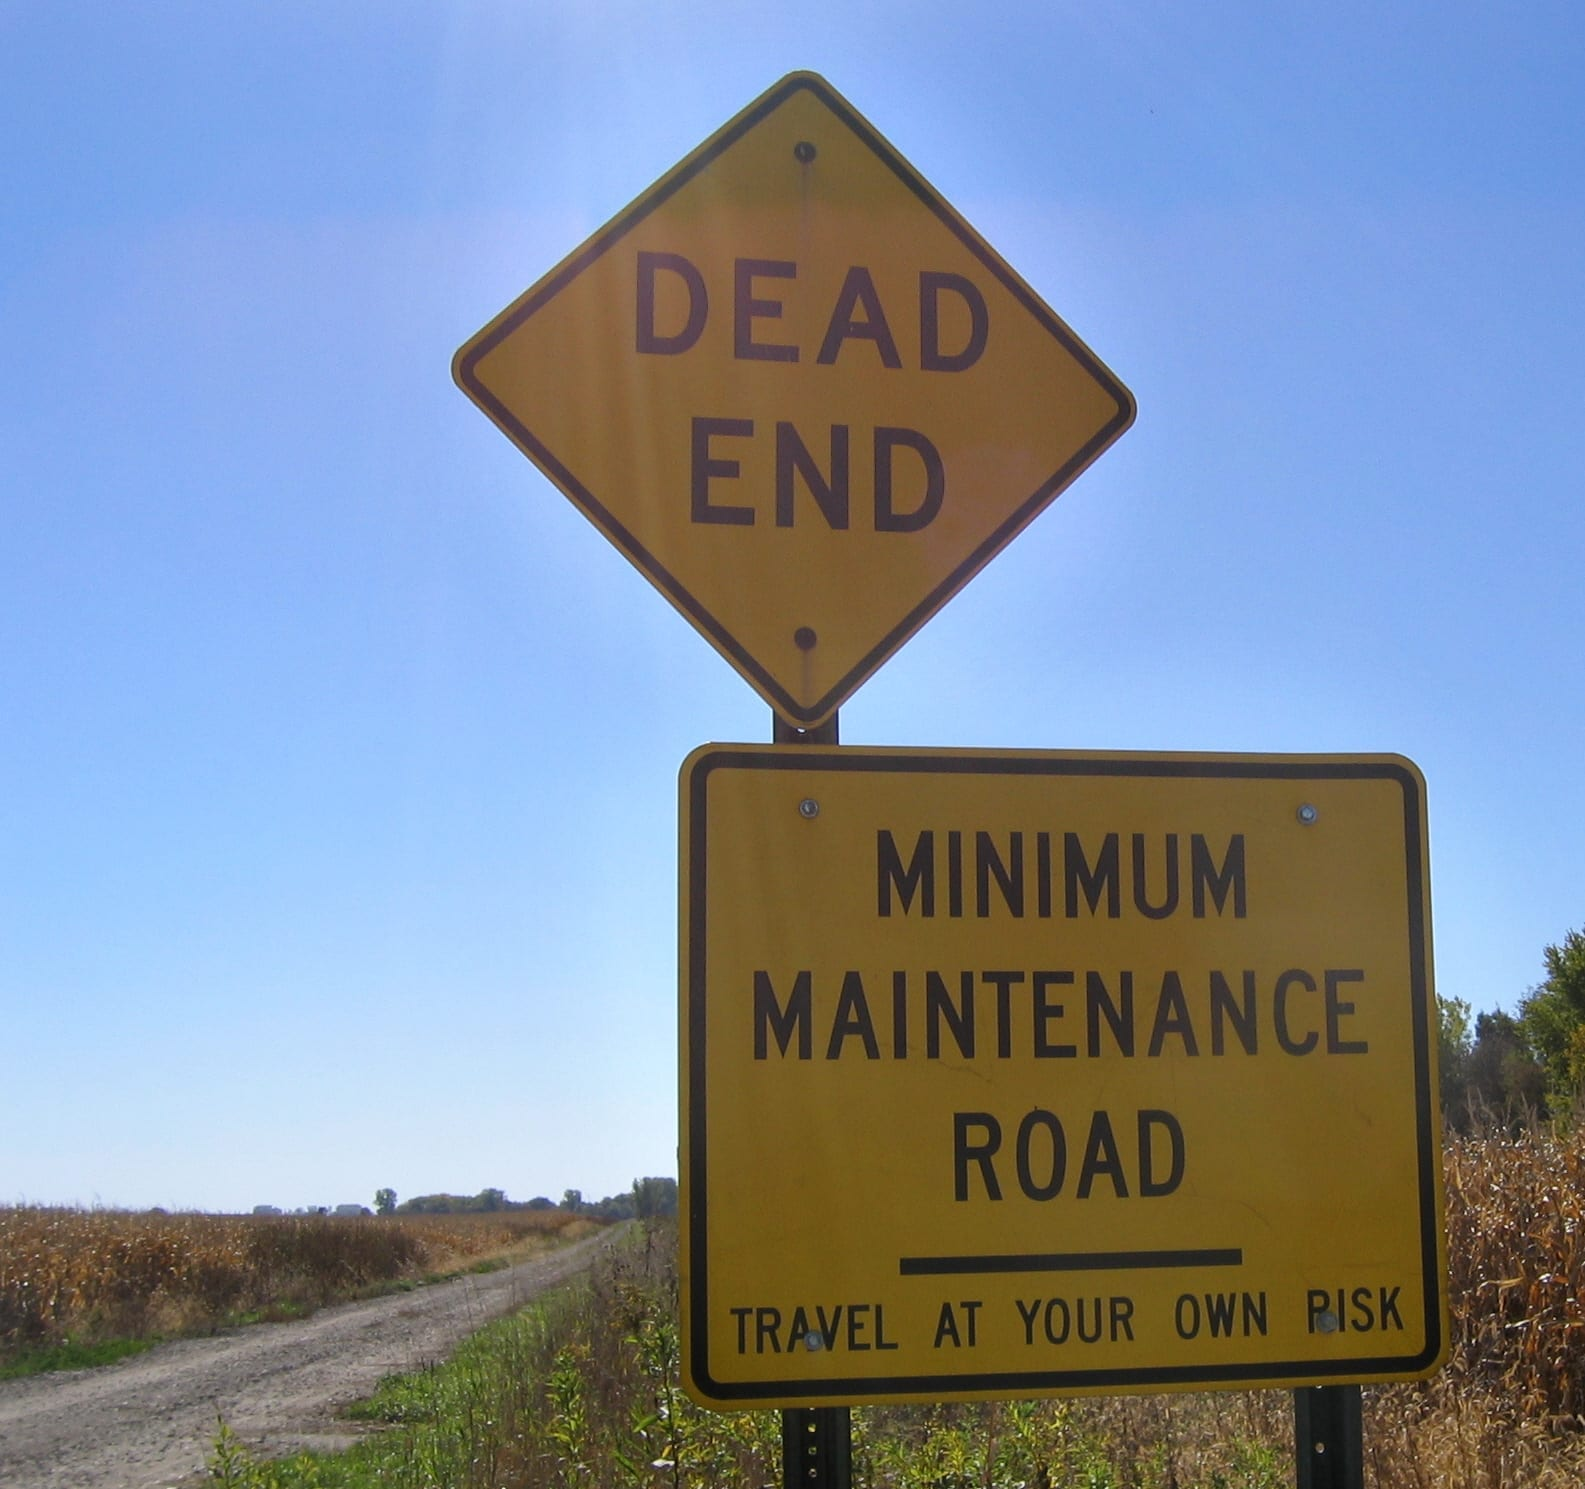 Website Maintenance represented by maintanence road sign